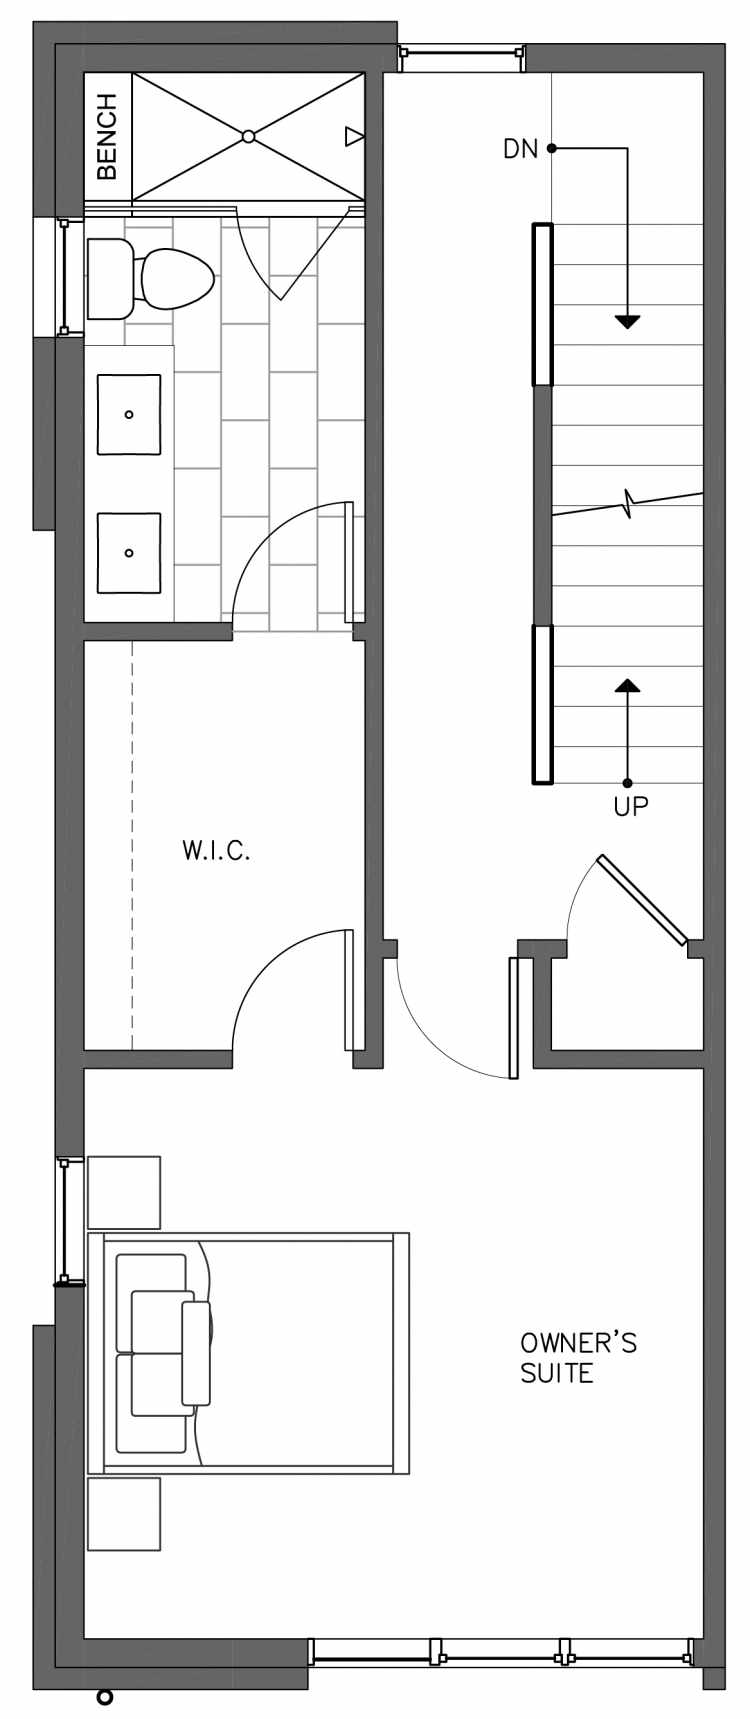 Third Floor Plan of 3236C 14th Ave W, One of the Harloe Townhomes in North Queen Anne by Isola Homes